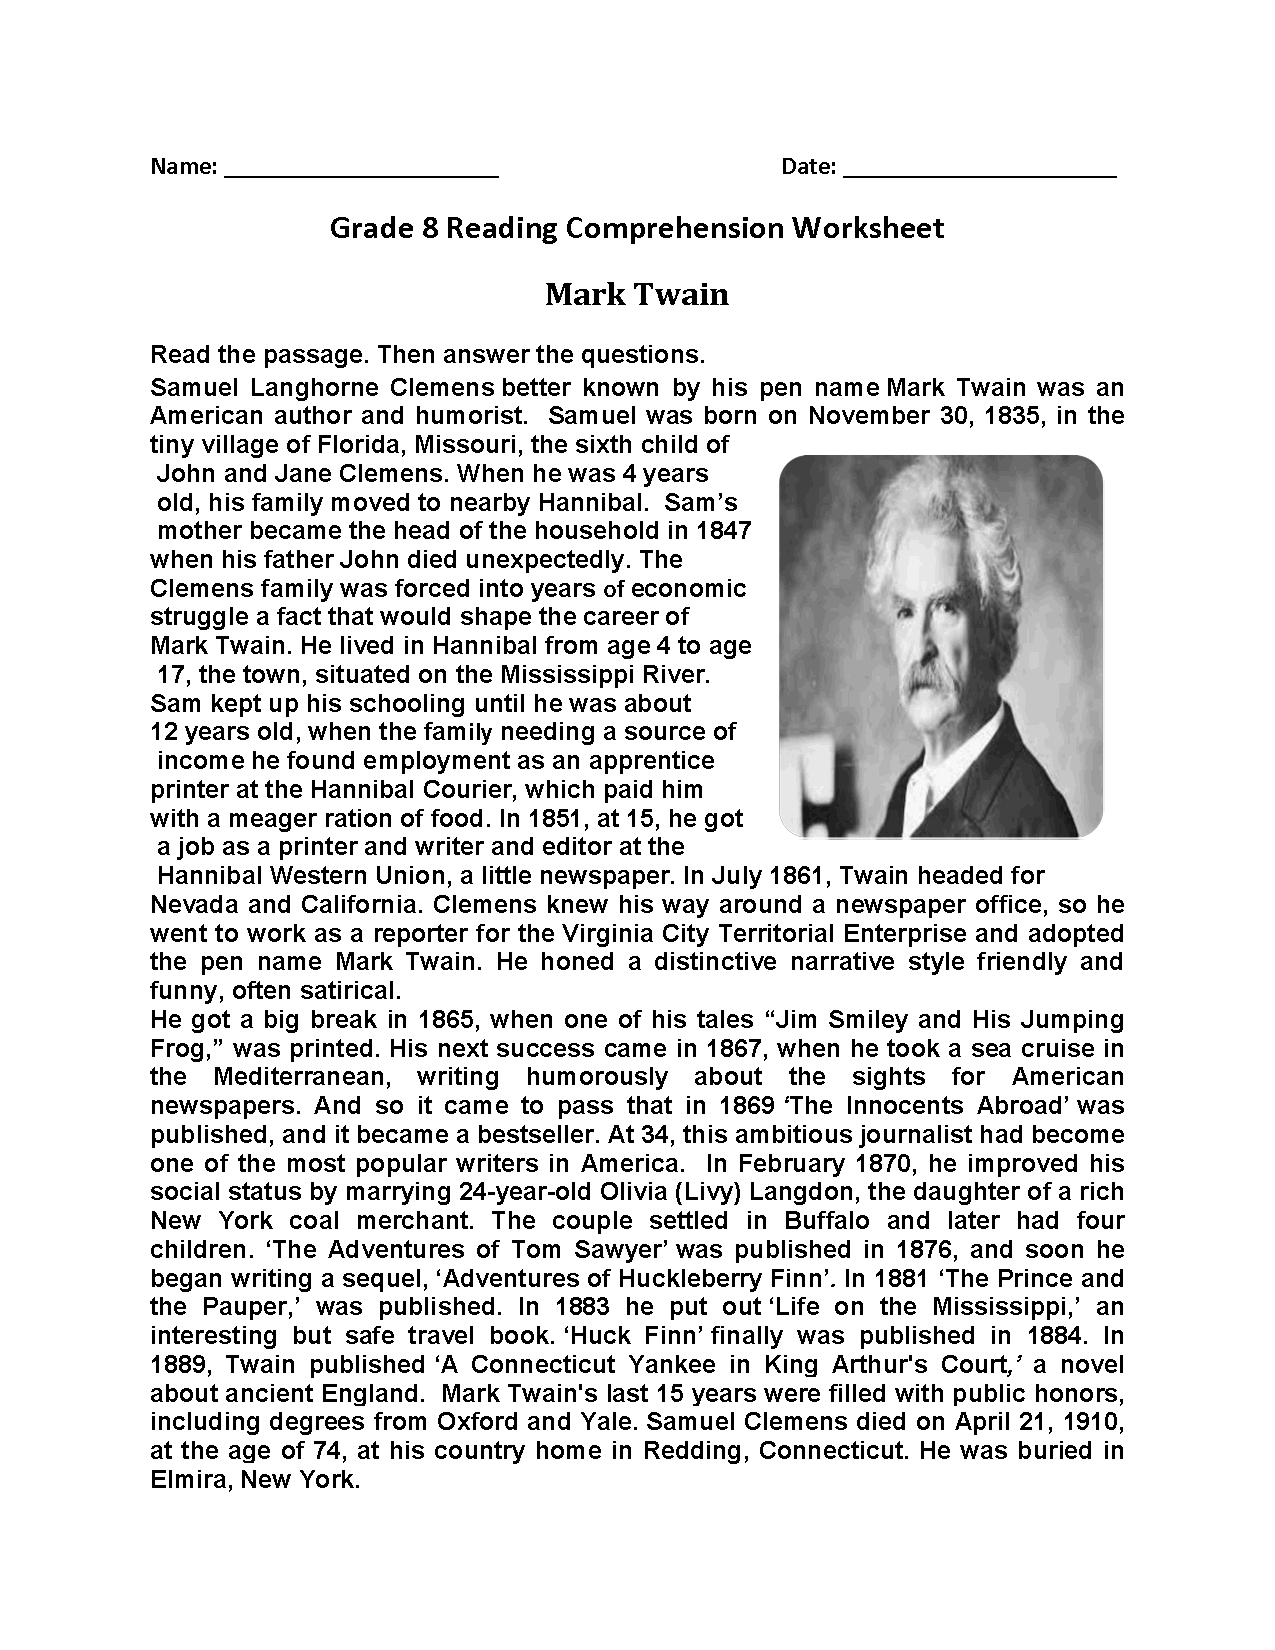 Worksheets Reading Worksheets 8th Grade mark twain eighth grade reading worksheets 8th wks worksheets